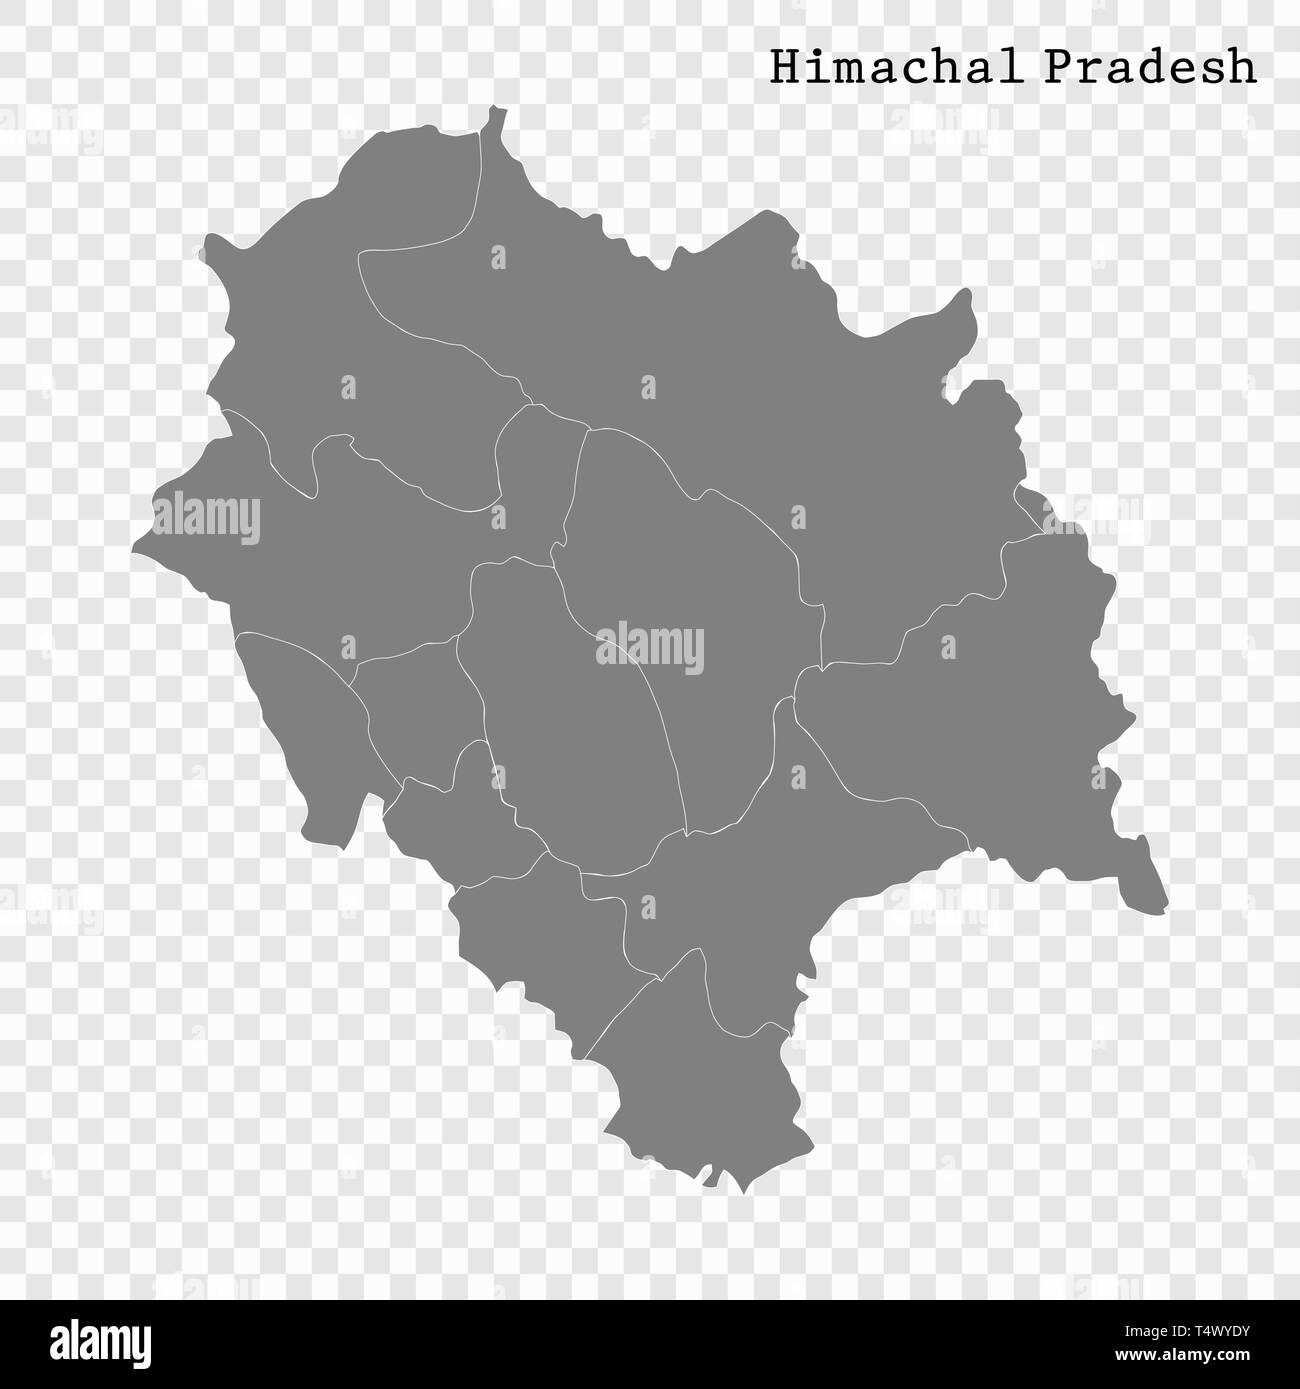 High Quality map of Himachal Pradesh is a state of India, with borders of the districts - Stock Vector